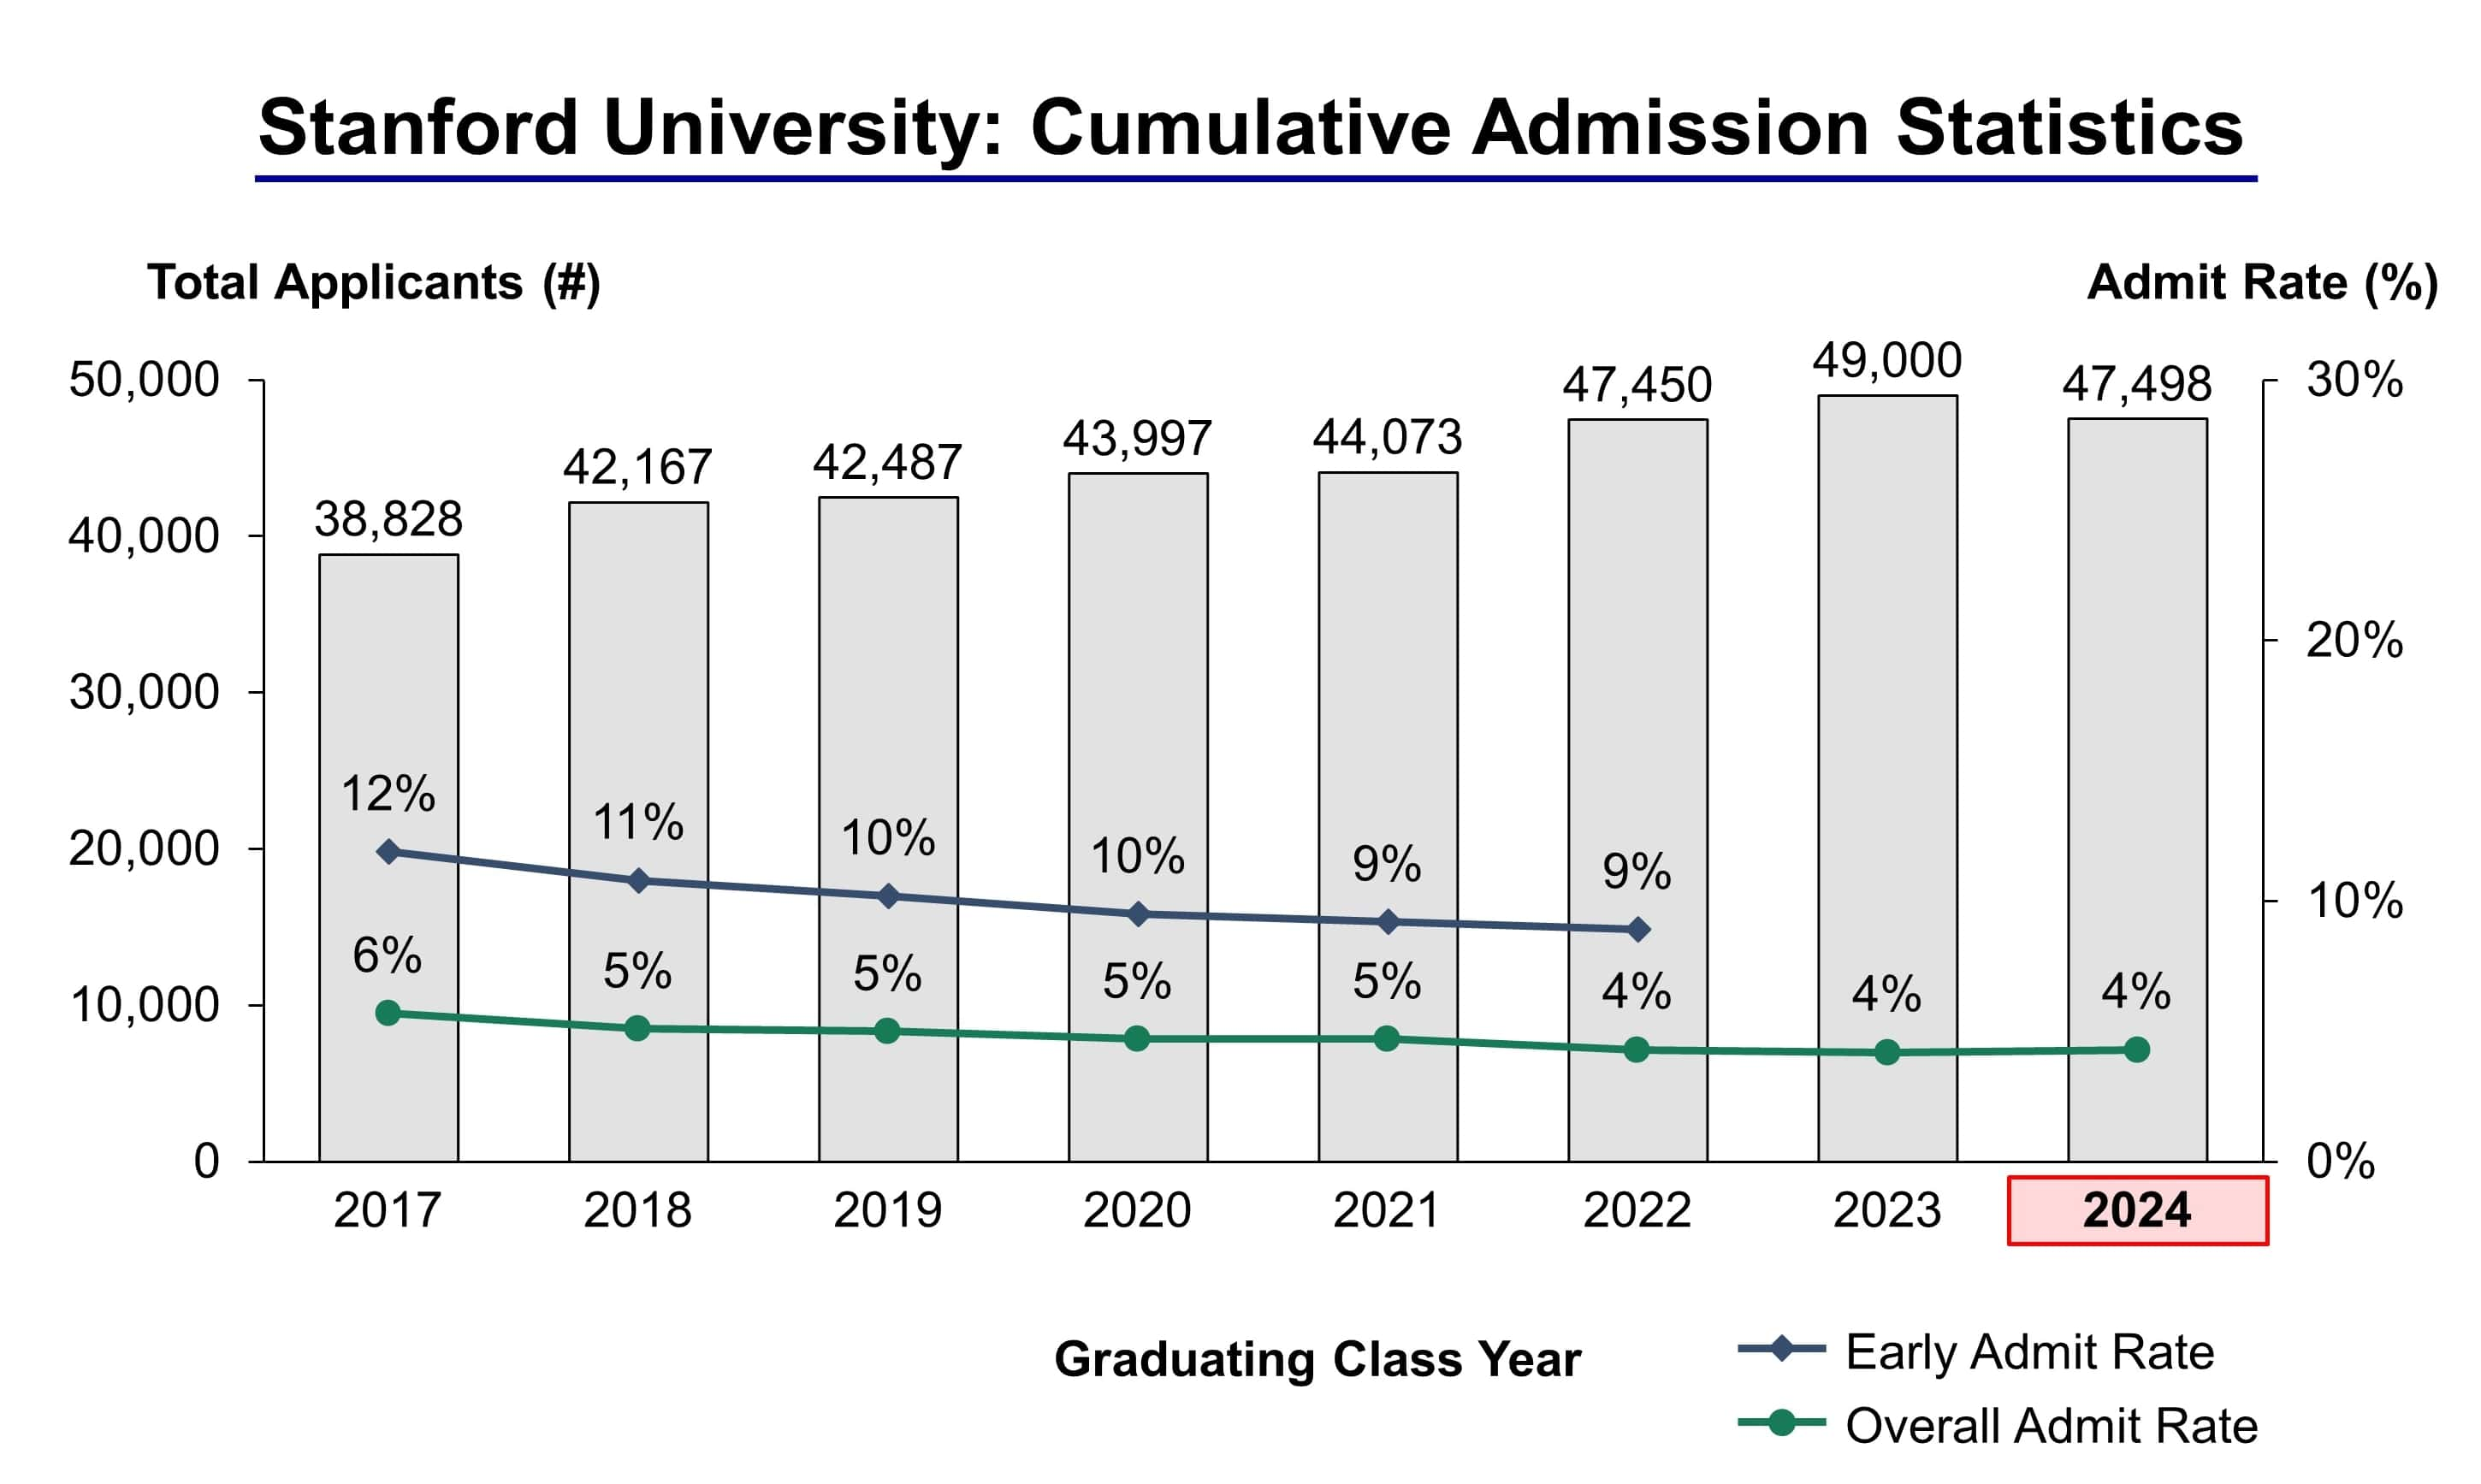 Stanford Calendar 2022.Stanford University Admission Statistics Class Of 2024 Ivy League